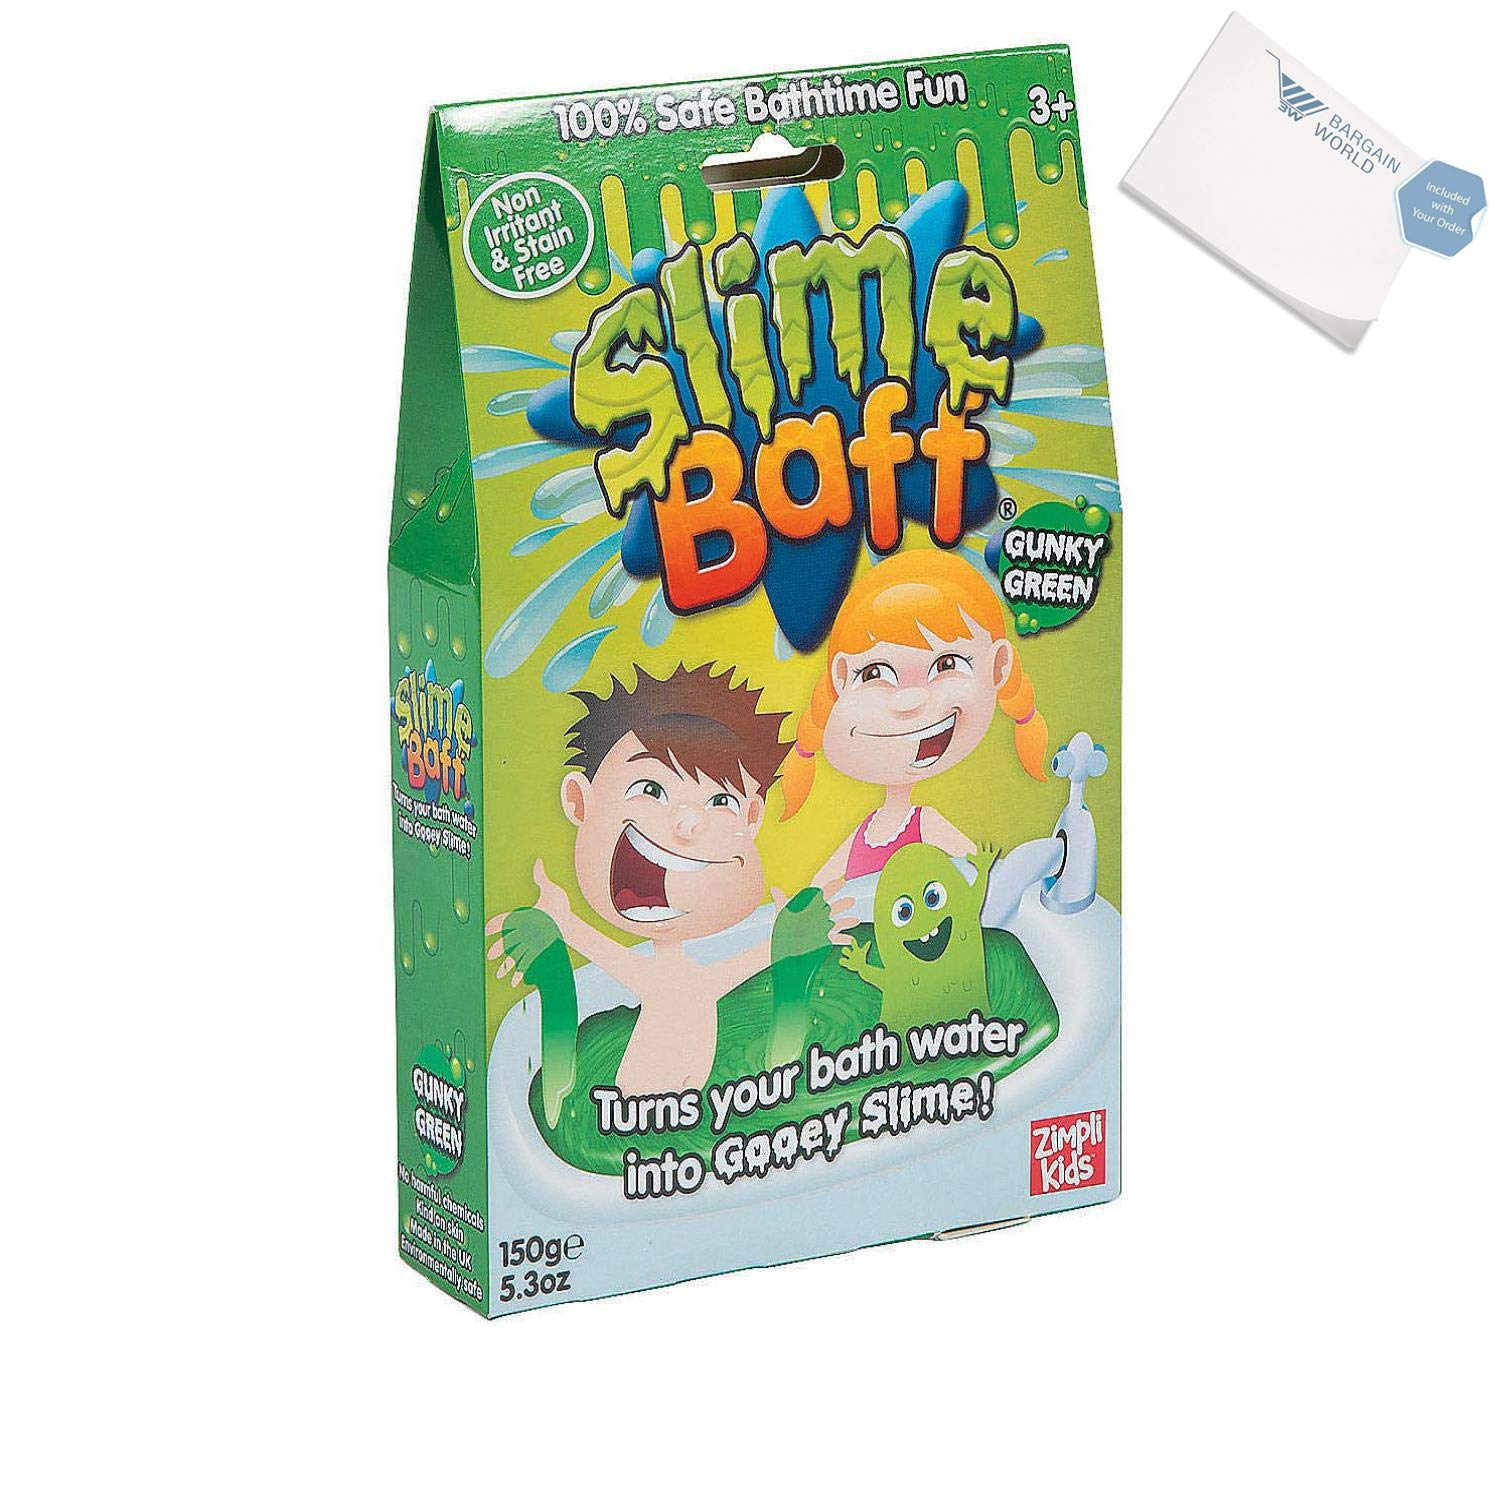 Bargain World Slime Baff (With Sticky Notes)